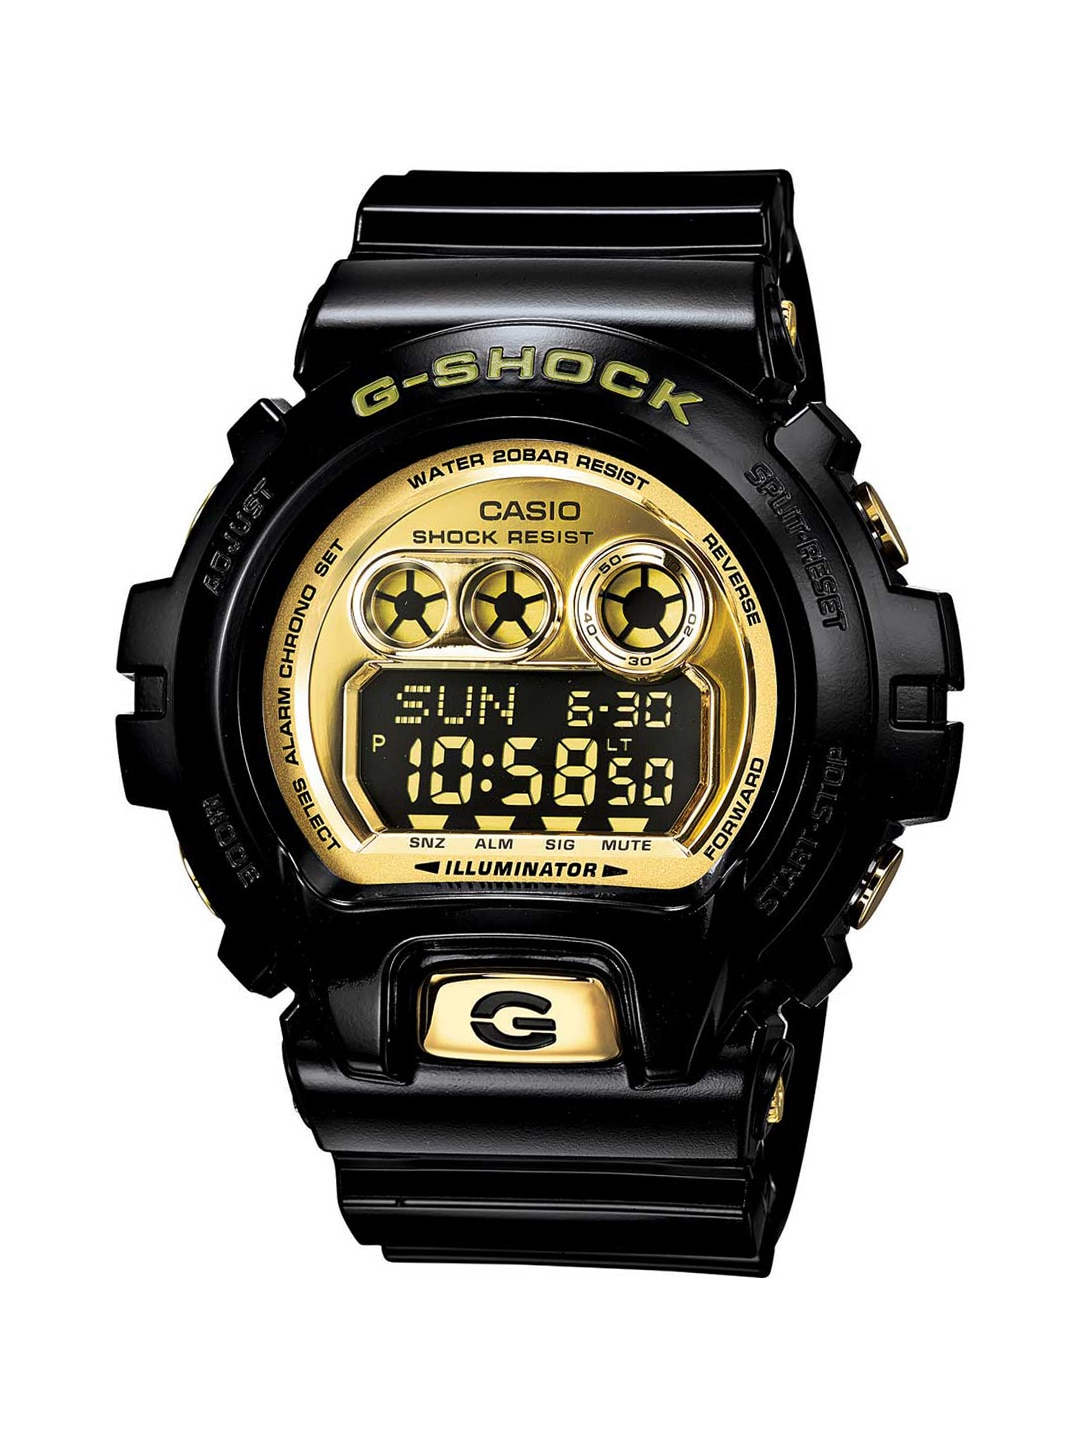 CASIO Men Gold-Toned Digital Watch GD-X6900FB-1DR image